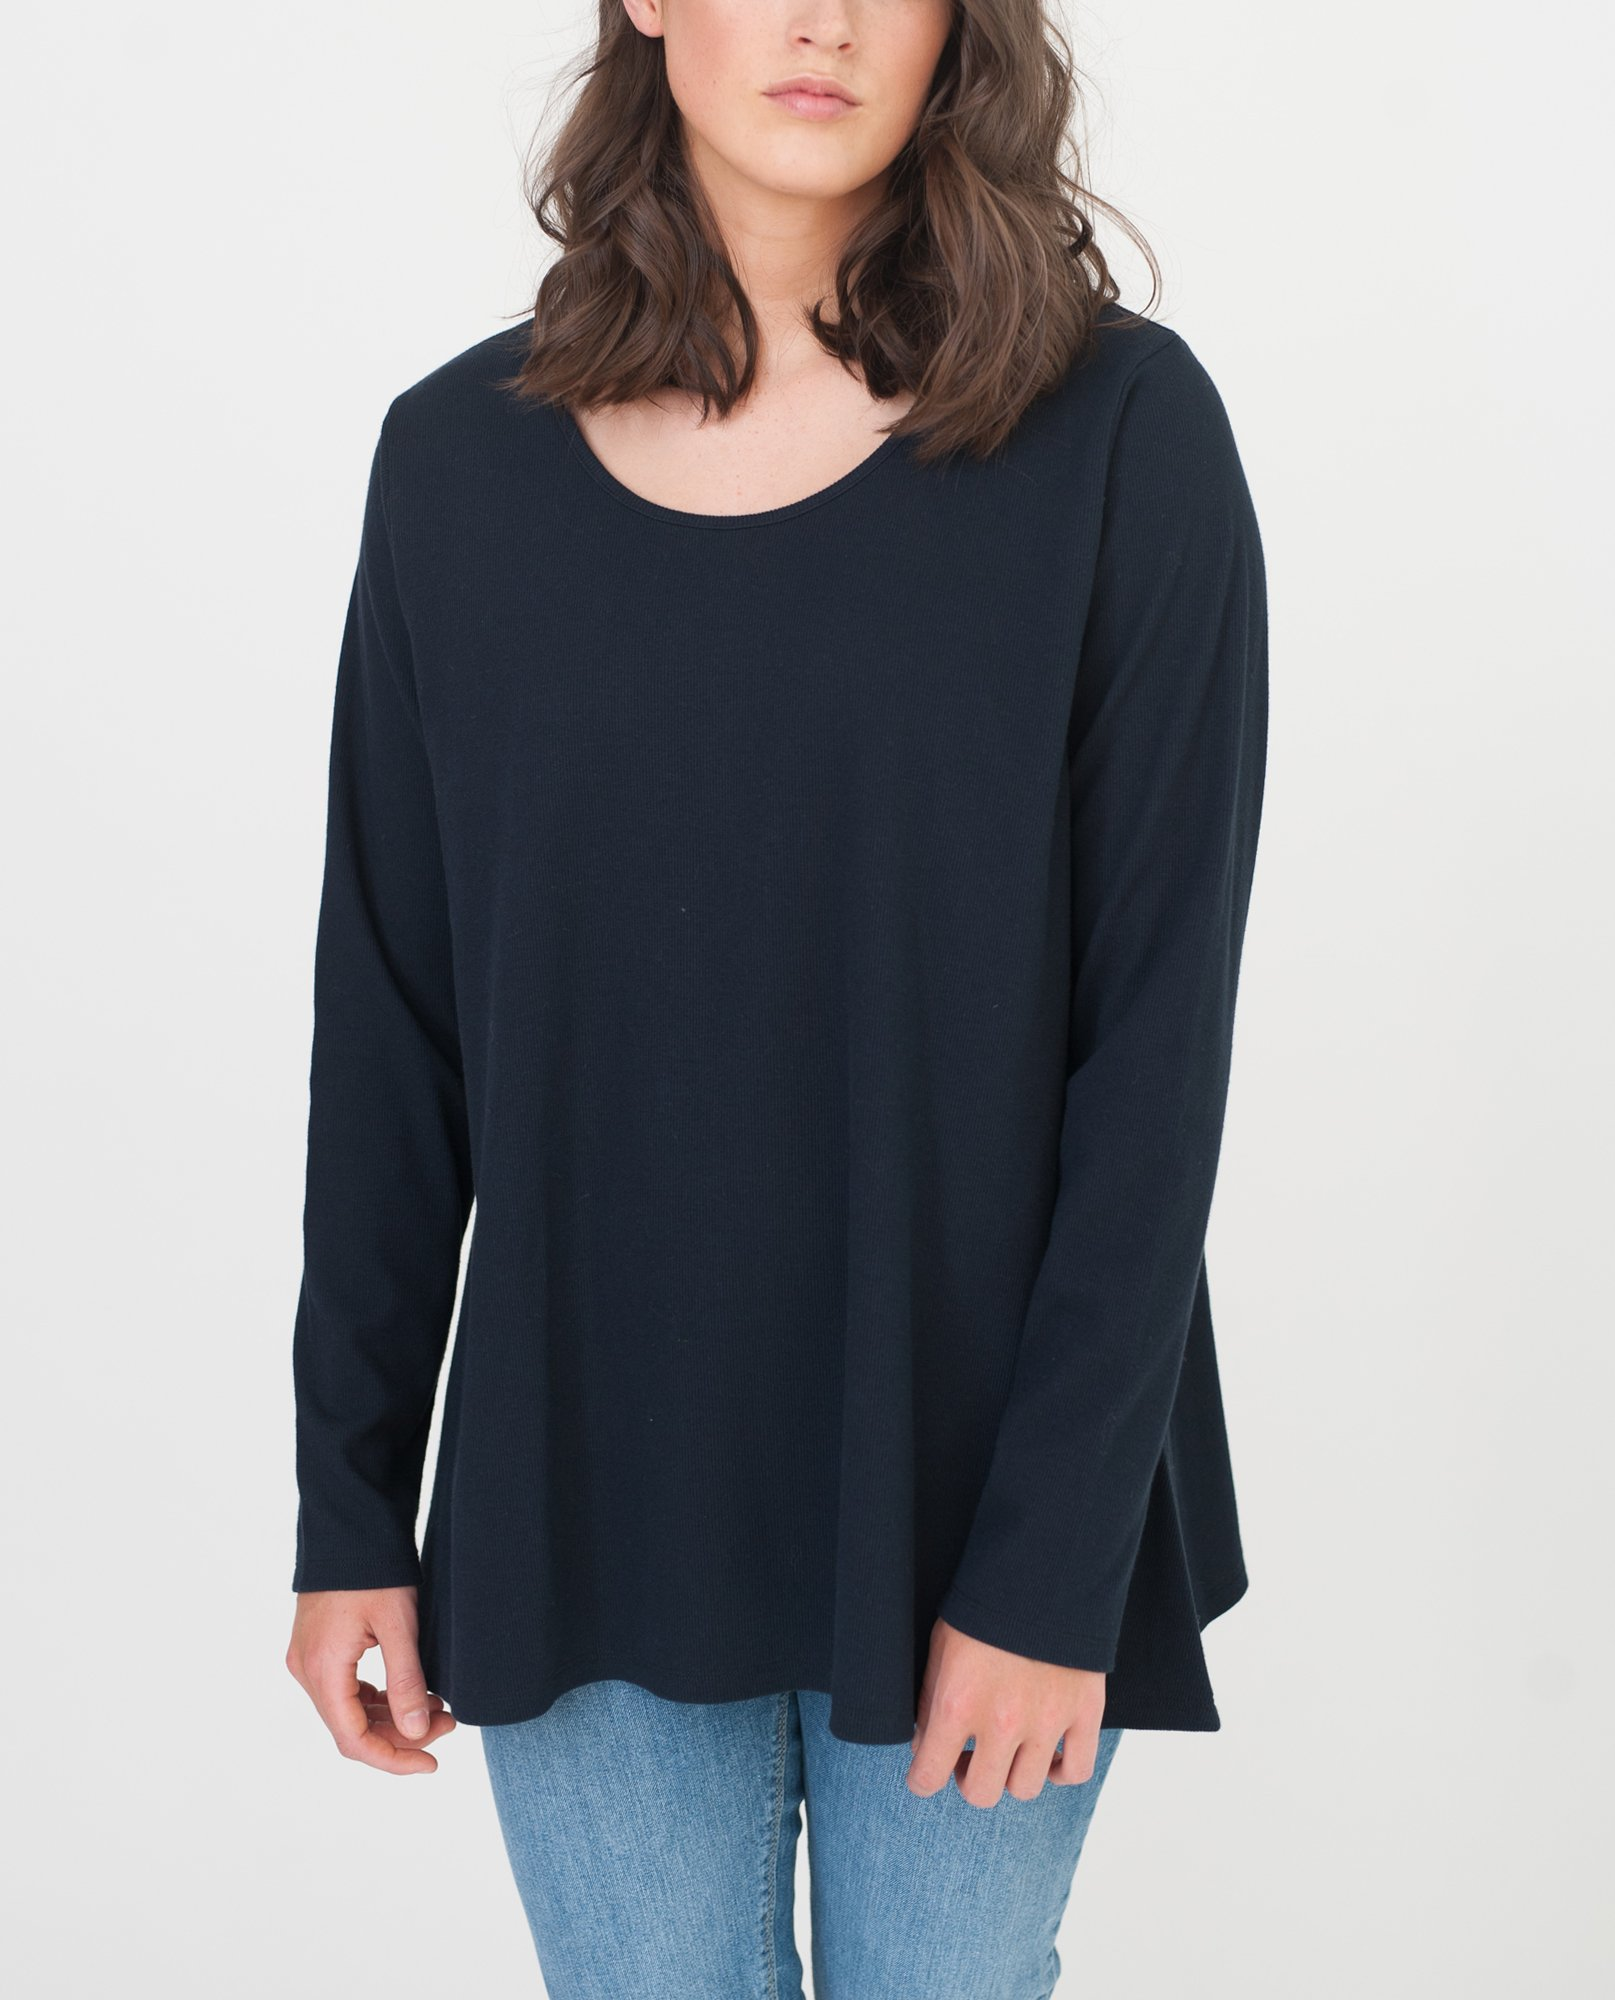 HELSA-JANE Organic Cotton Swing Top In Navy from Beaumont Organic